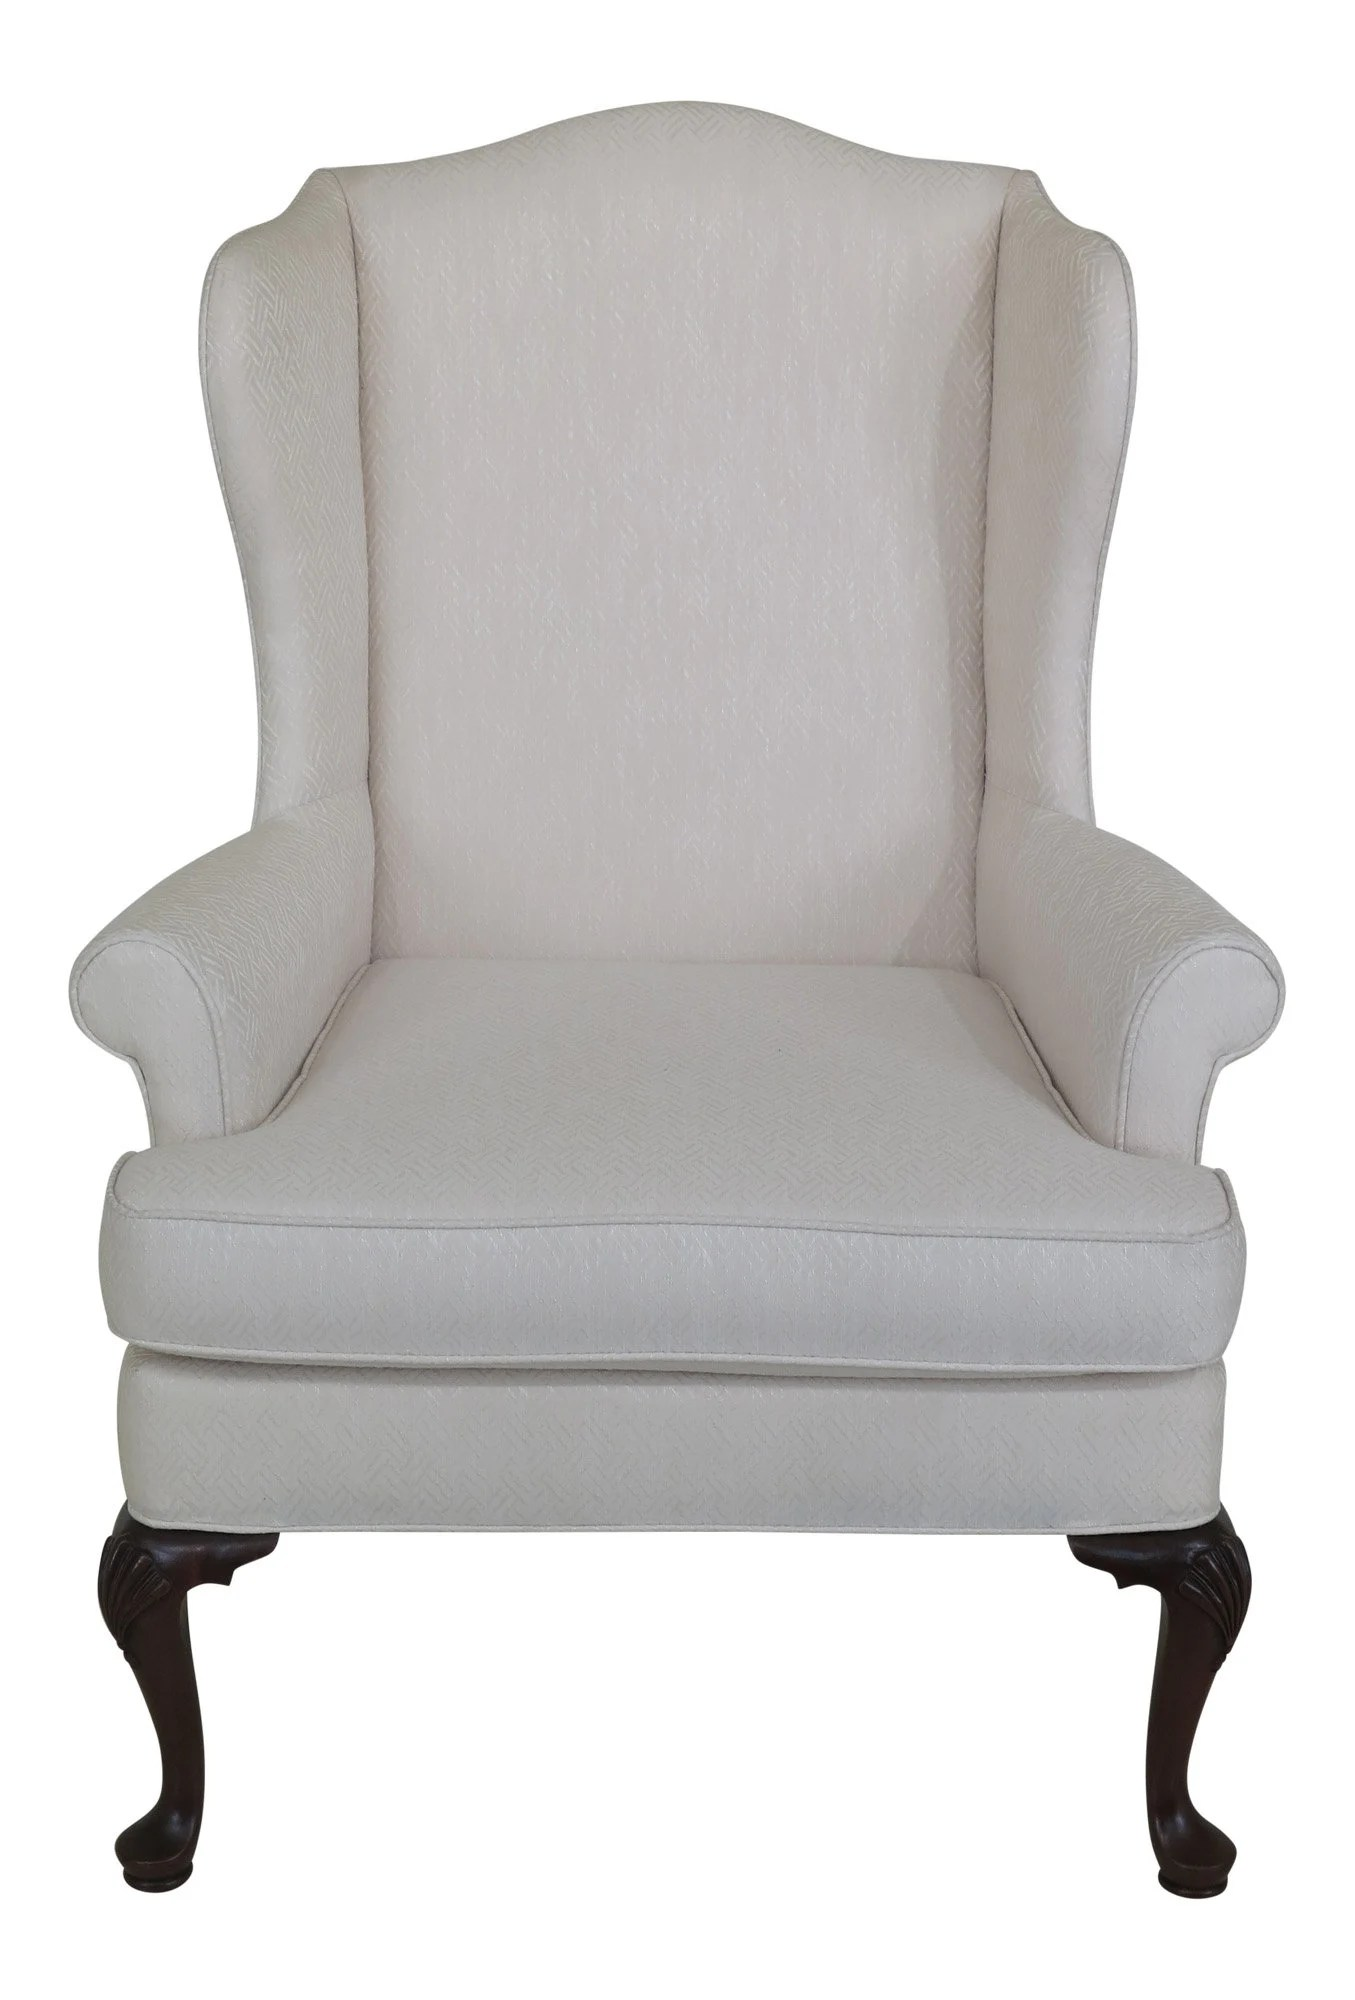 White Wing Chair 46060ec Woodmark Originals Queen Anne Mahogany Wing Chair